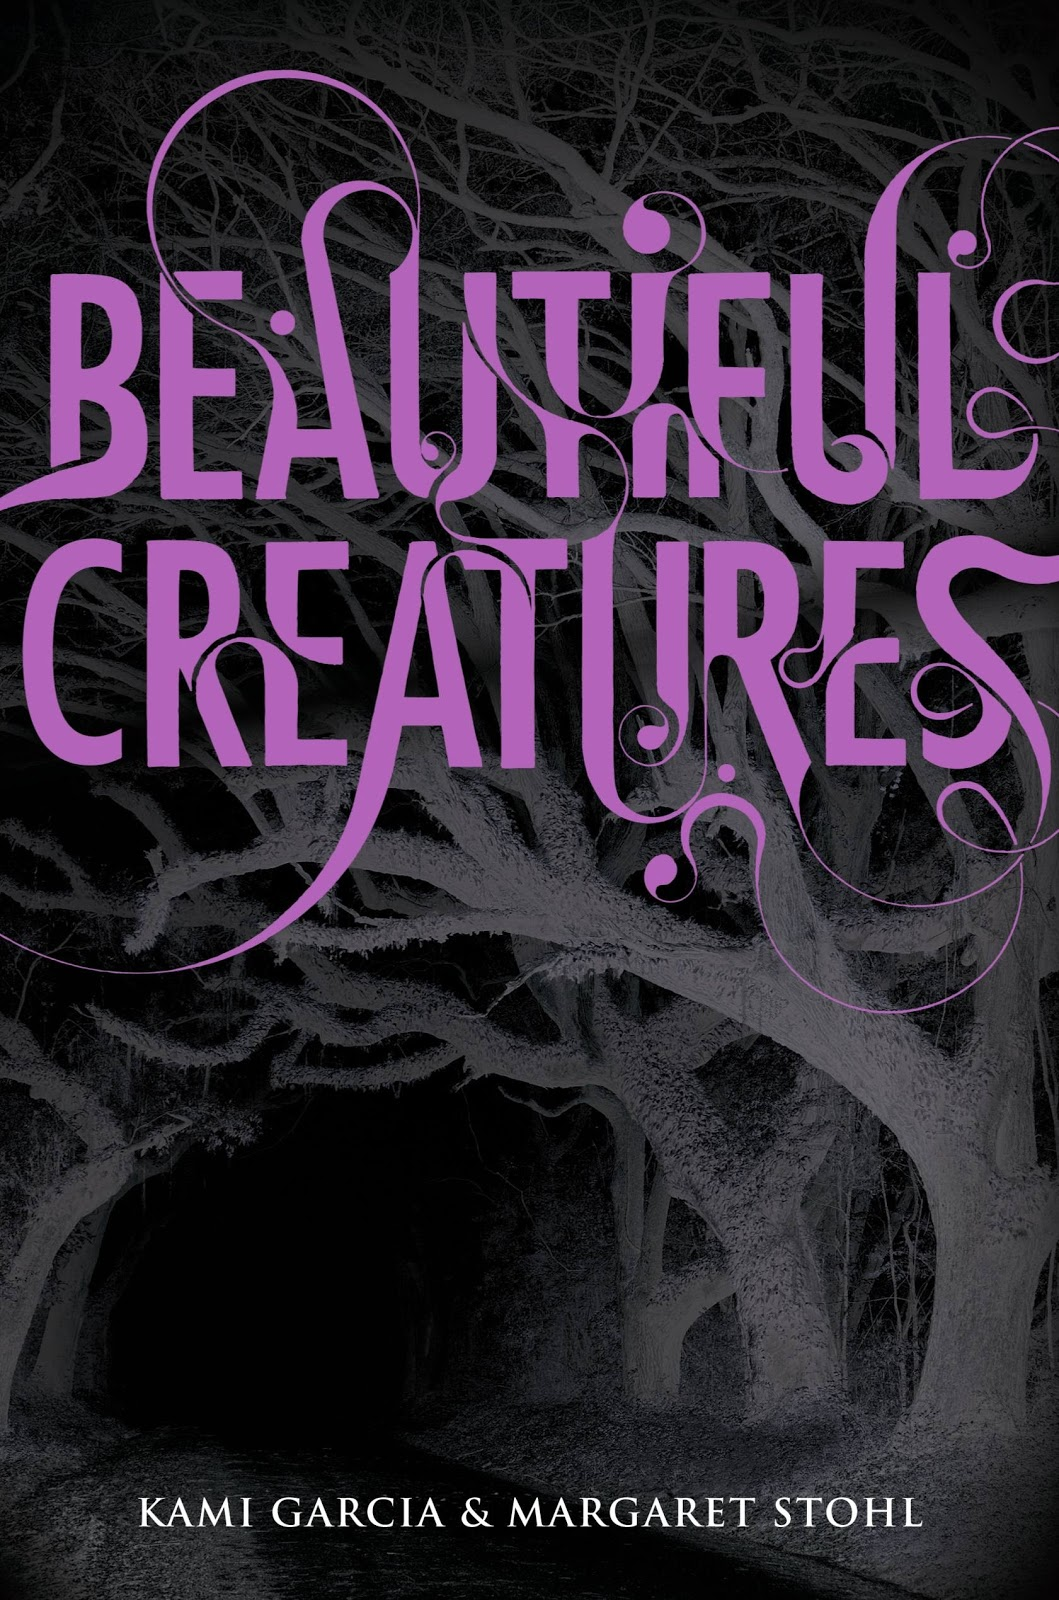 Fashion Book Cover Review : Down the rabbit hole book review beautiful creatures by